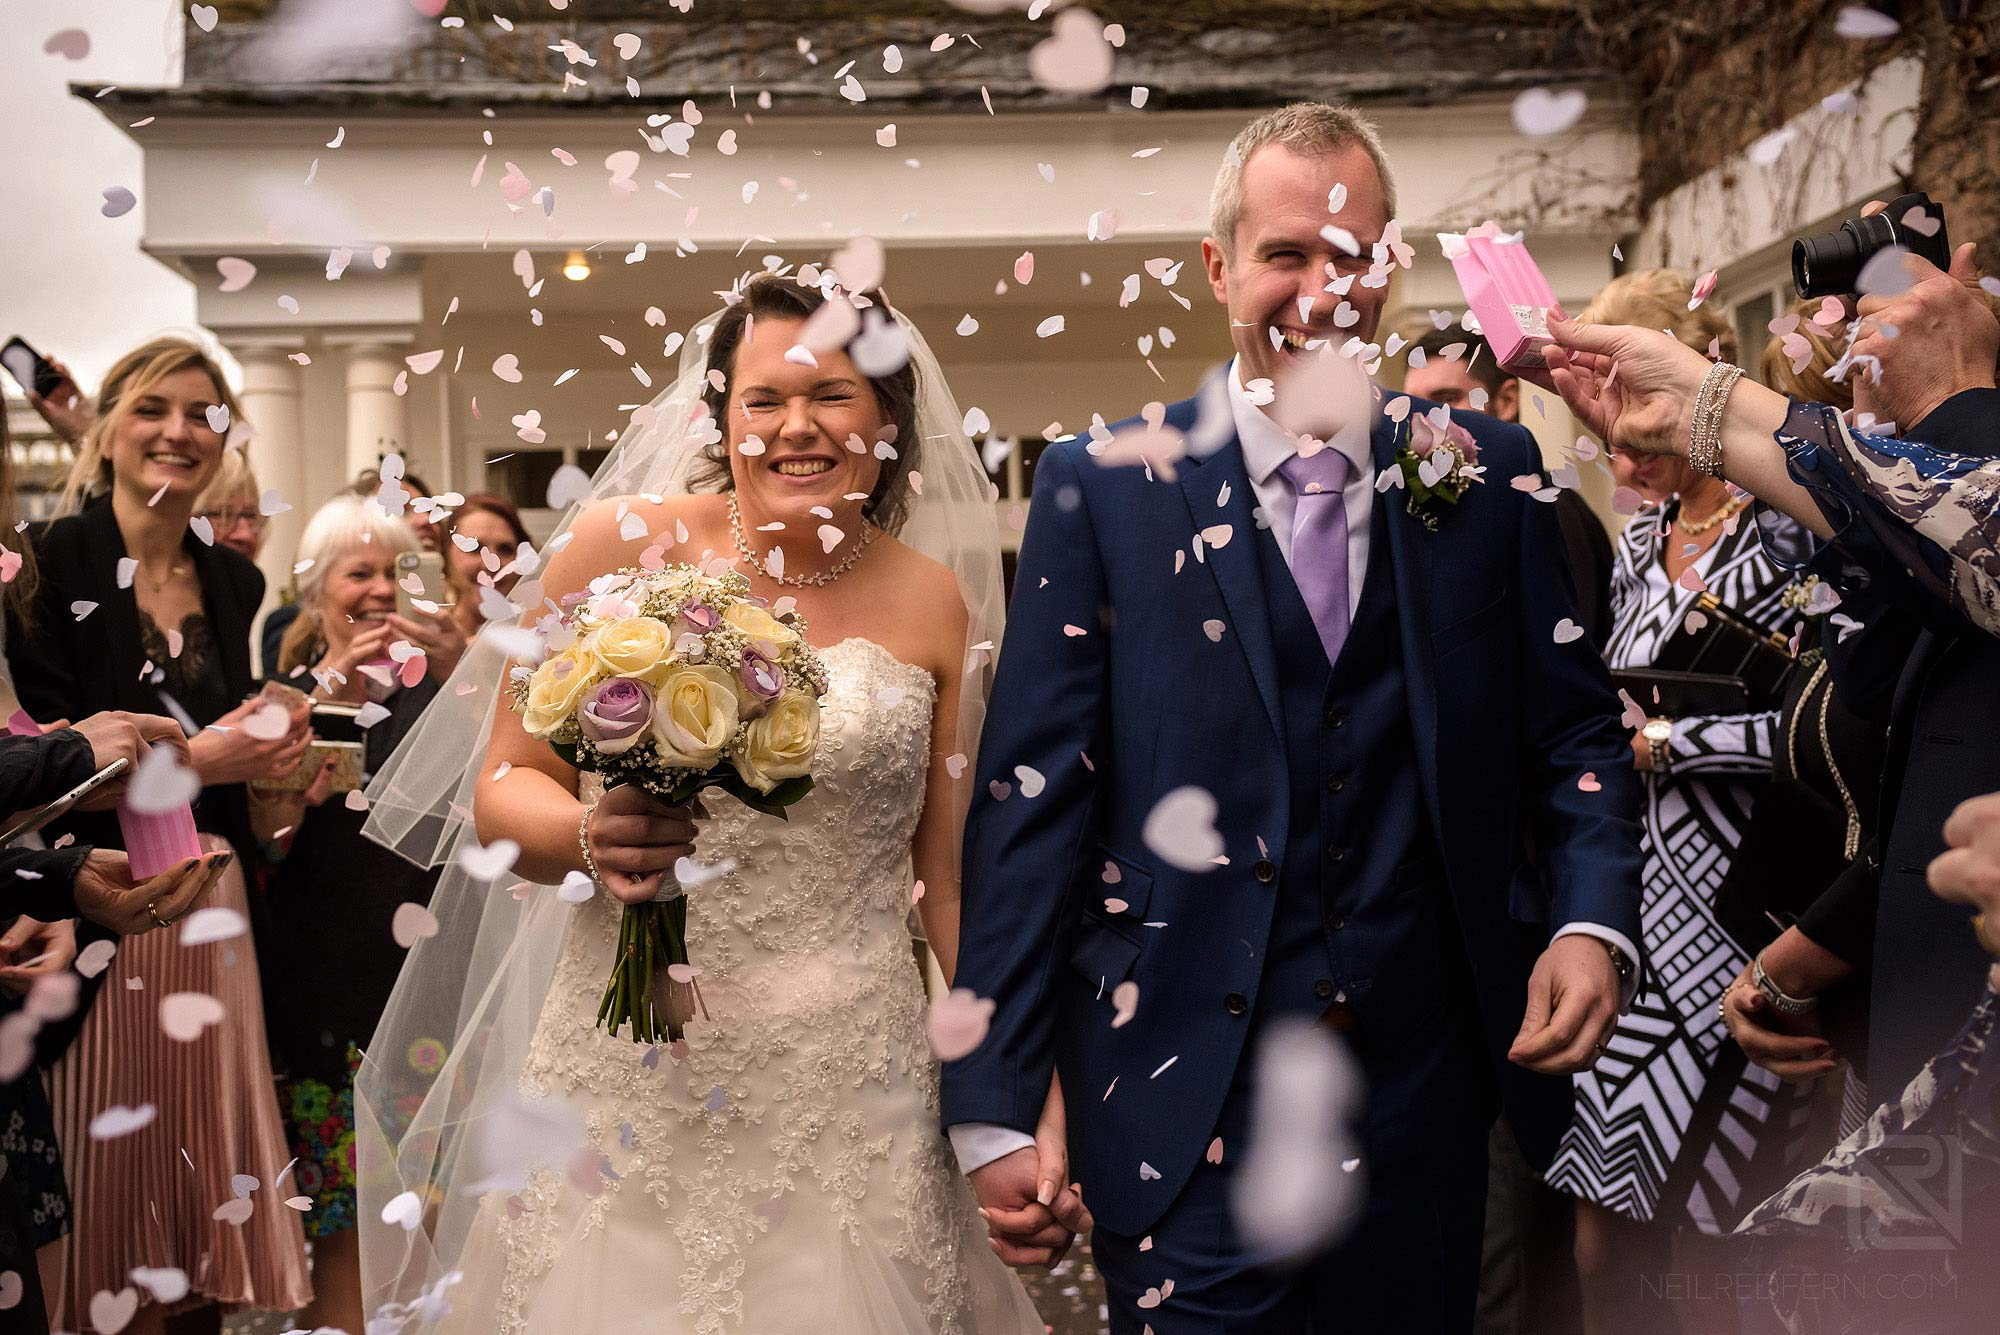 lots of confetti being thrown at bride and groom